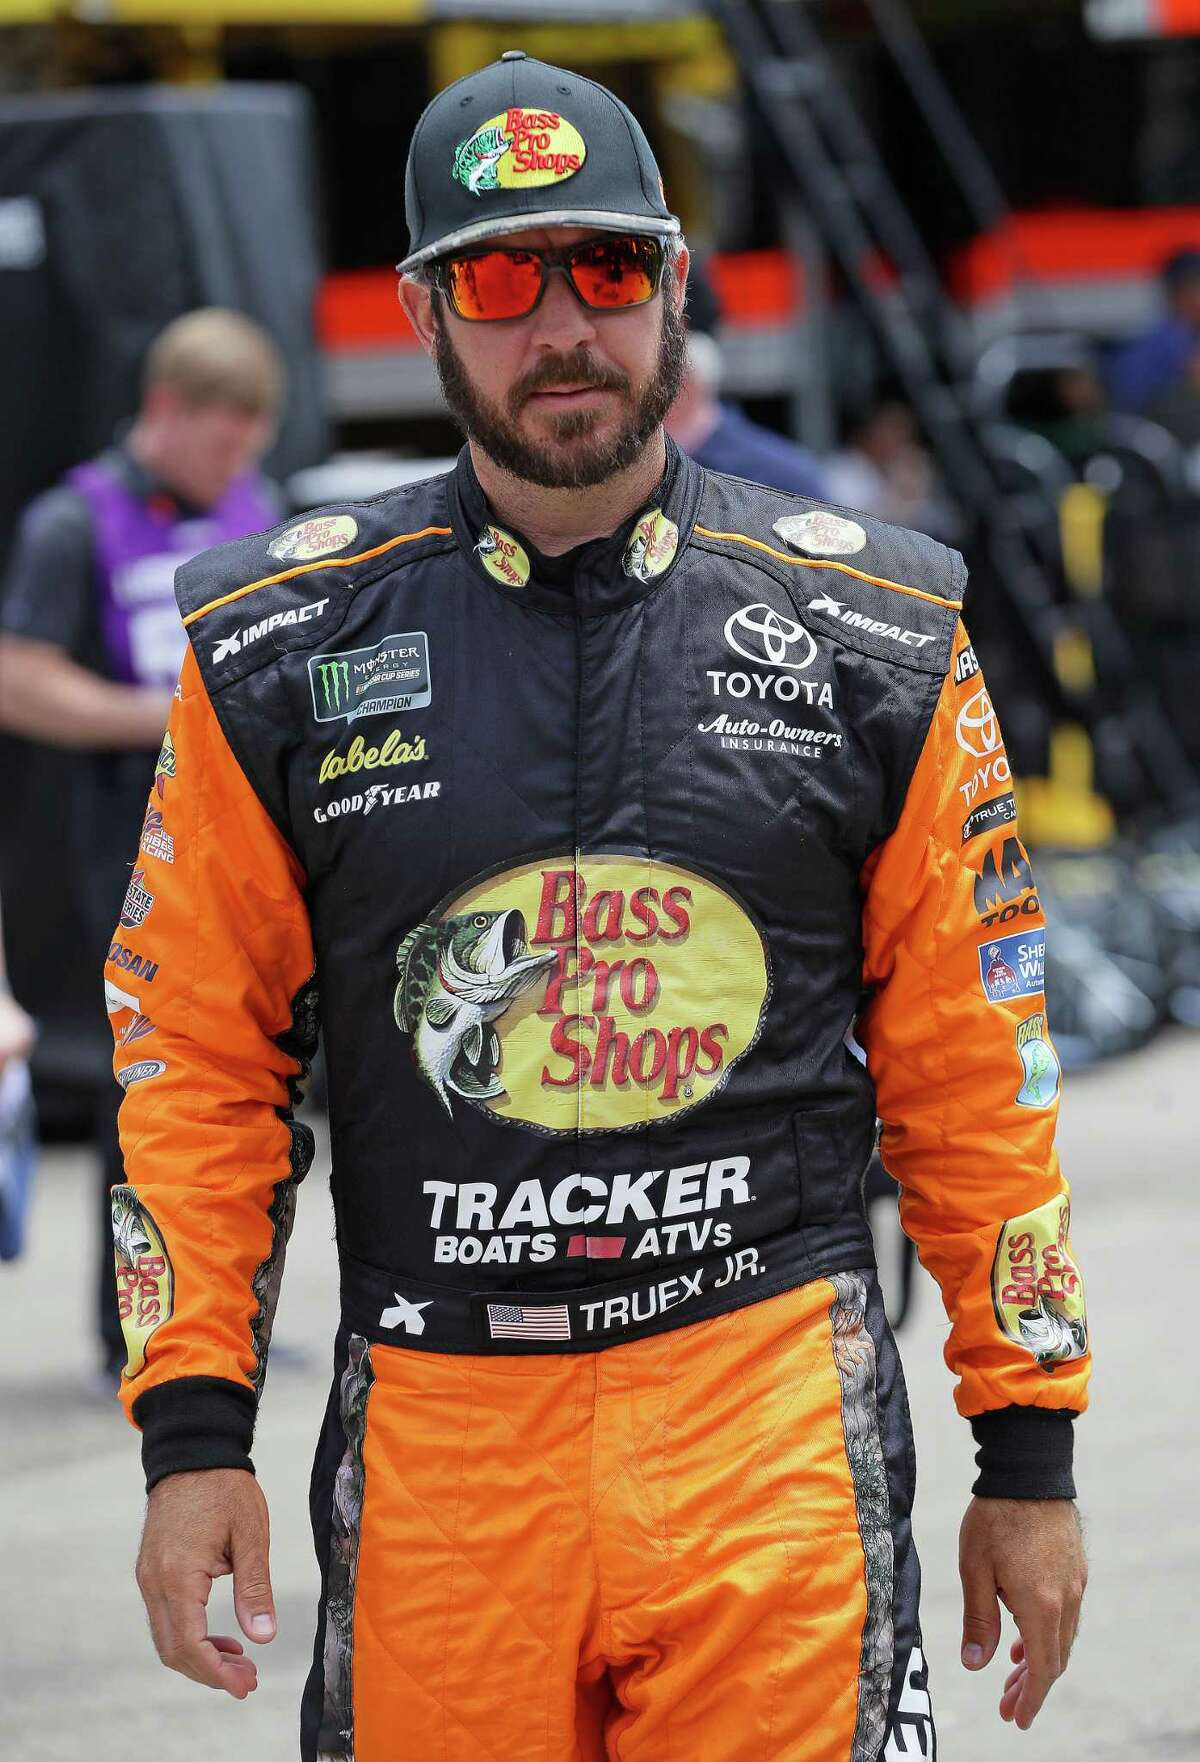 JOLIET, ILLINOIS - JUNE 29: Martin Truex Jr., driver of the #19 Bass Pro Shops Toyota, walks to his car before practice for the Monster Energy NASCAR Cup Series Camping World 400 at Chicagoland Speedway on June 29, 2019 in Joliet, Illinois. (Photo by Jonathan Daniel/Getty Images)